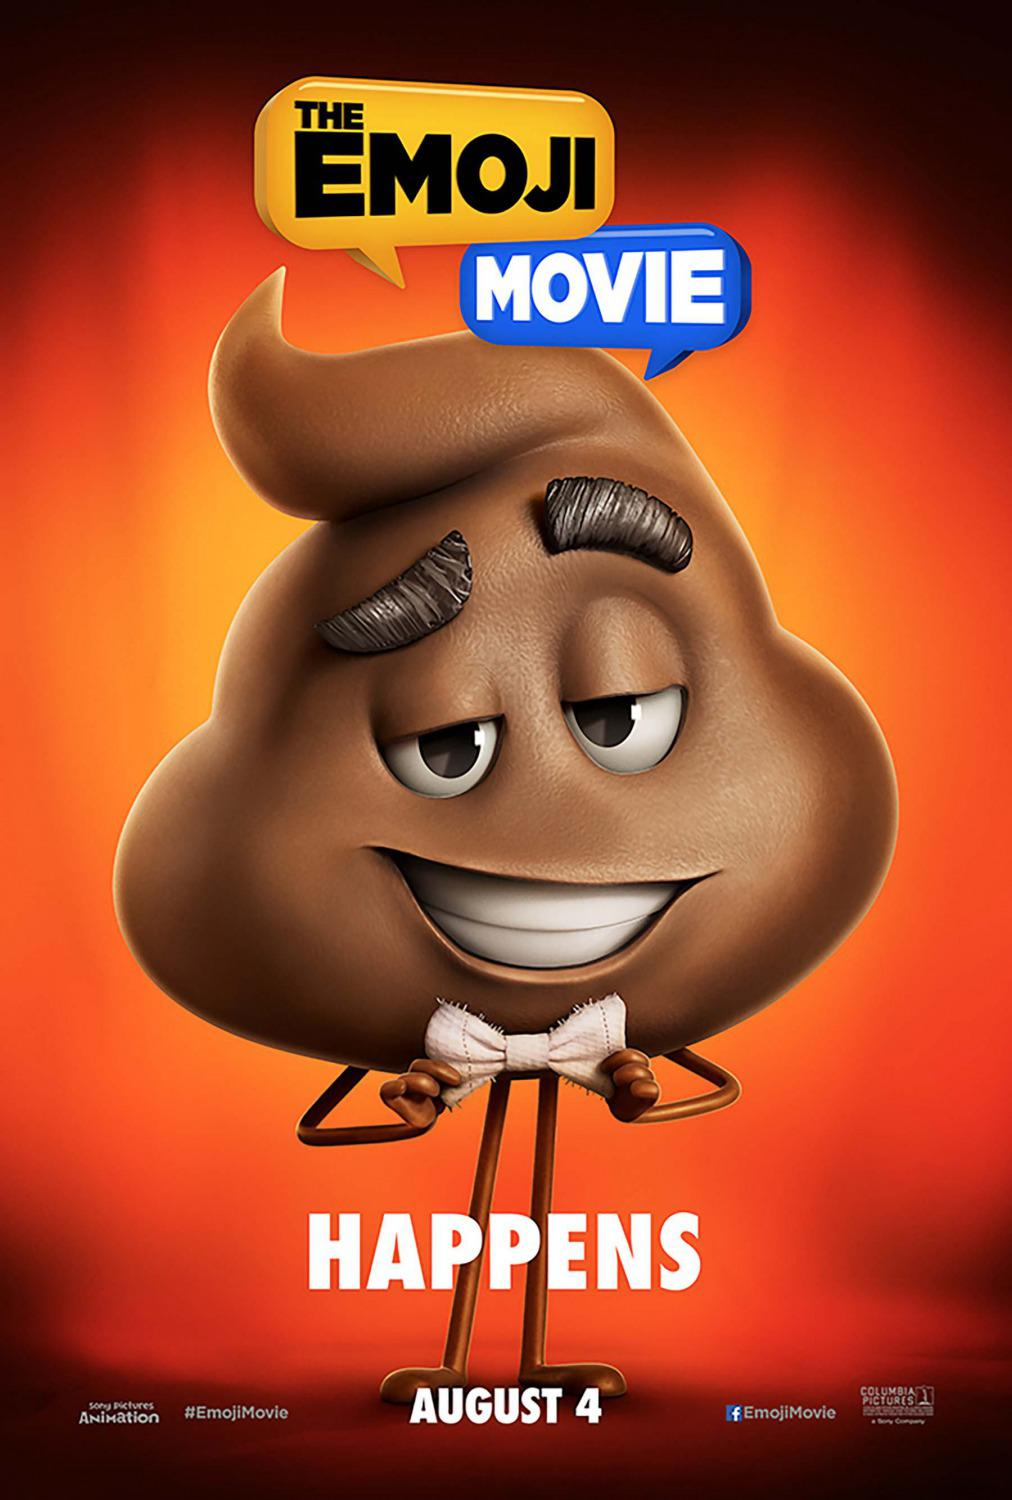 Emoji - Emoticon animated movie - Happens - shit - poster